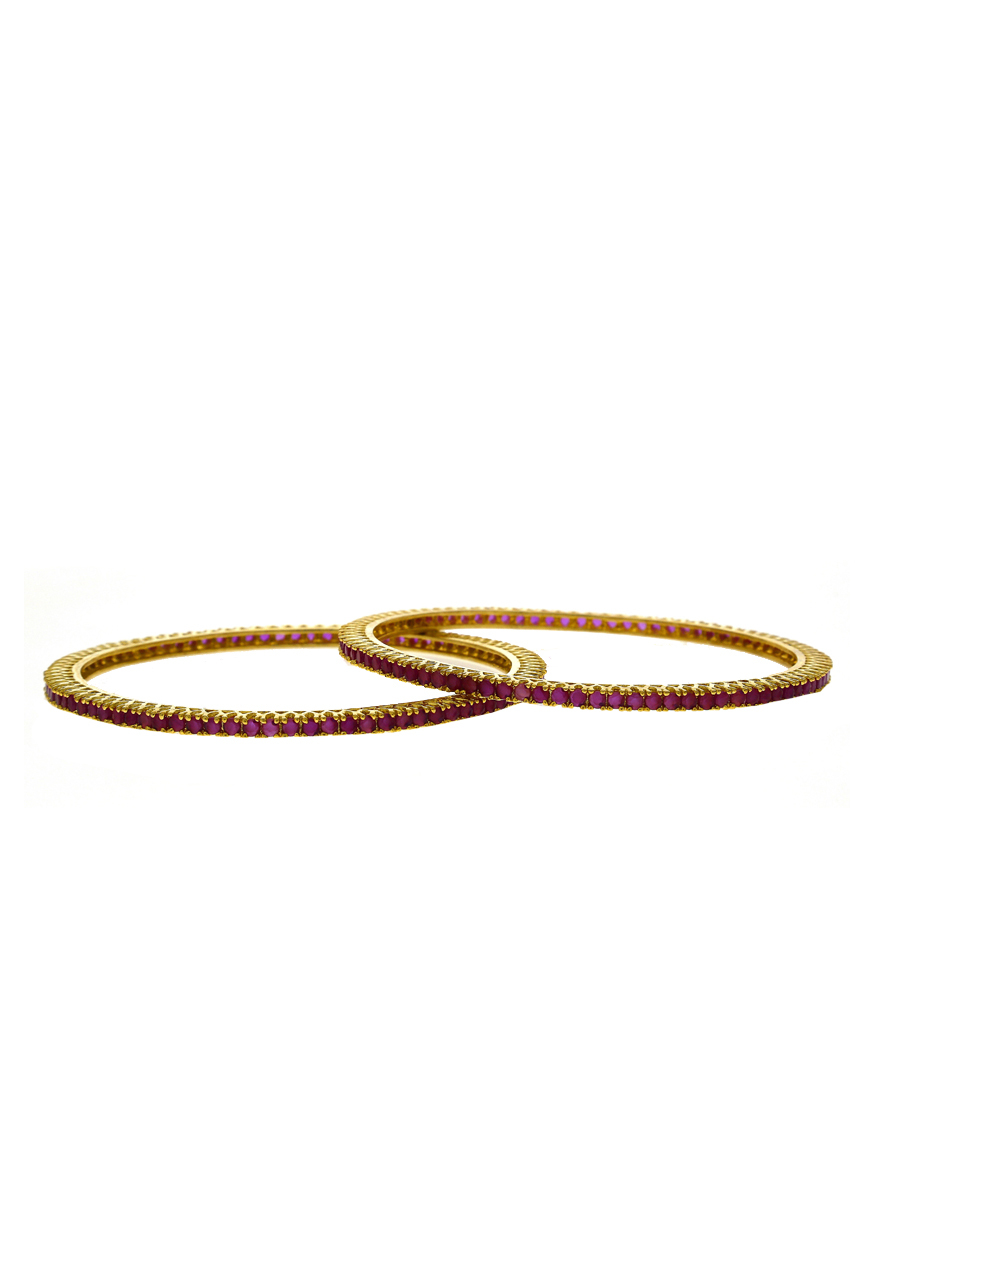 Dazzling Pink Stones Studded With Golden Matt Finishing Bangles.